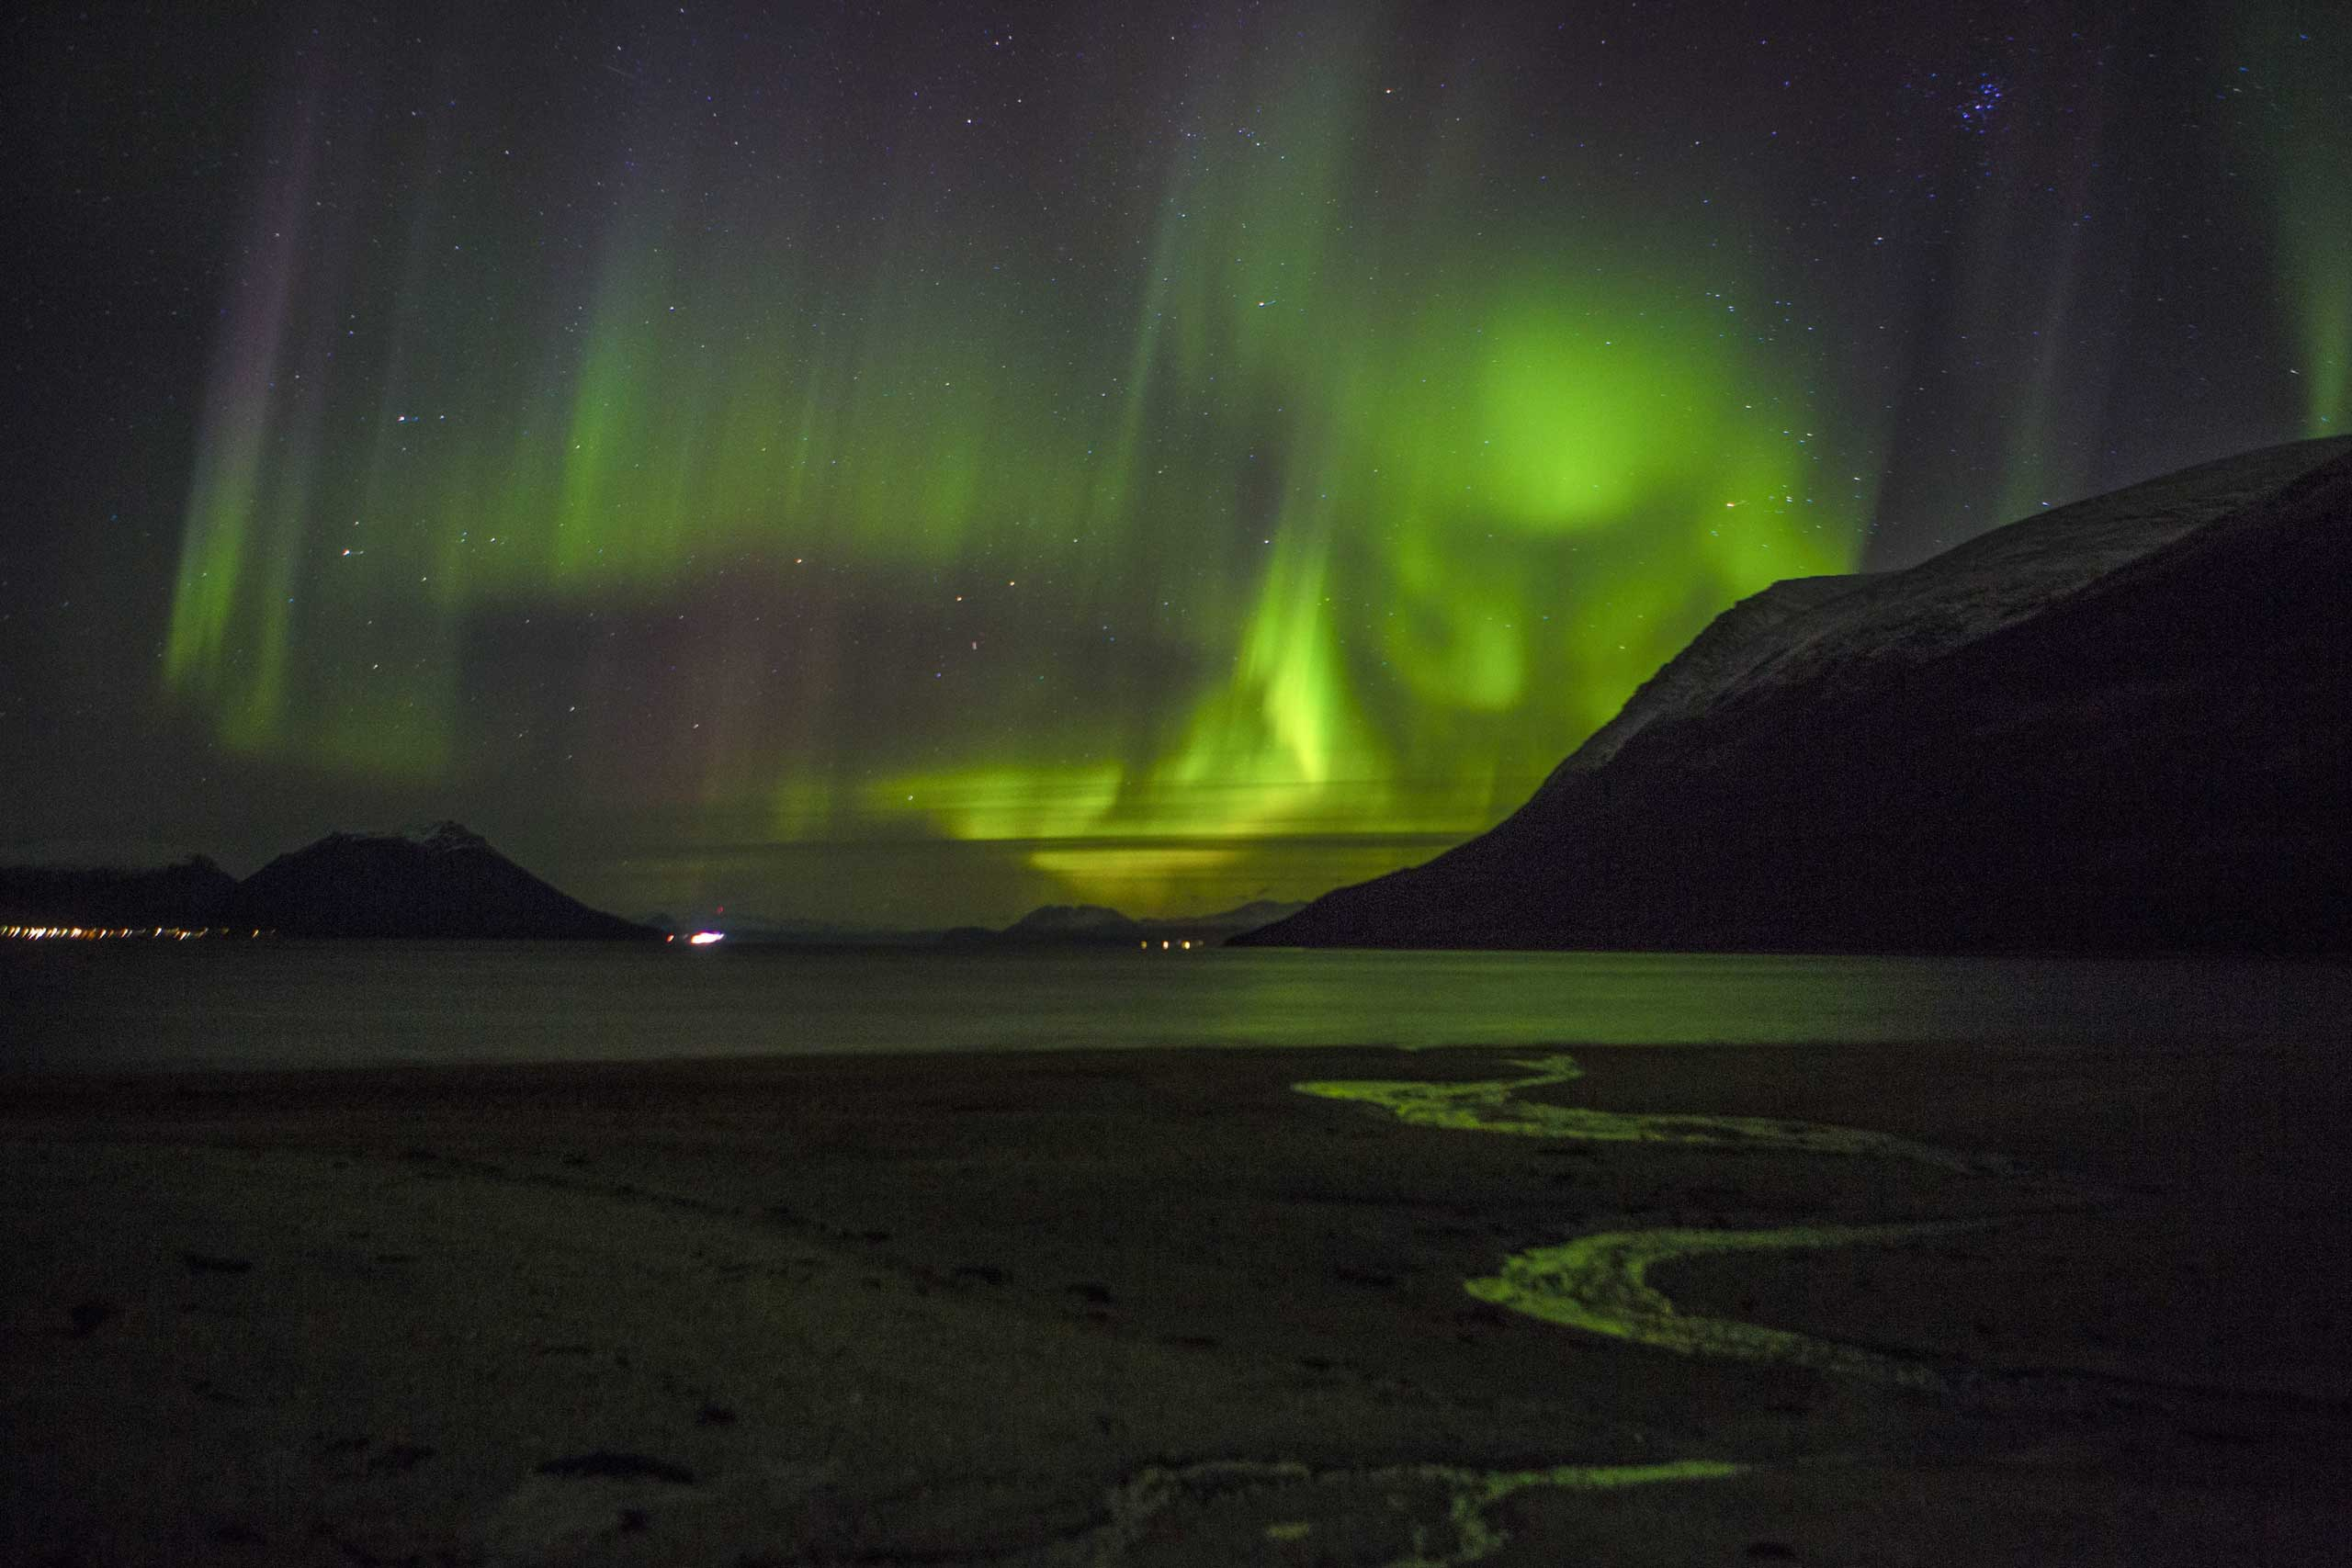 Oct. 21, 2014. A Northern light (Aurora borelias) can bee seen outside the city of Tromso in Northern Norway.